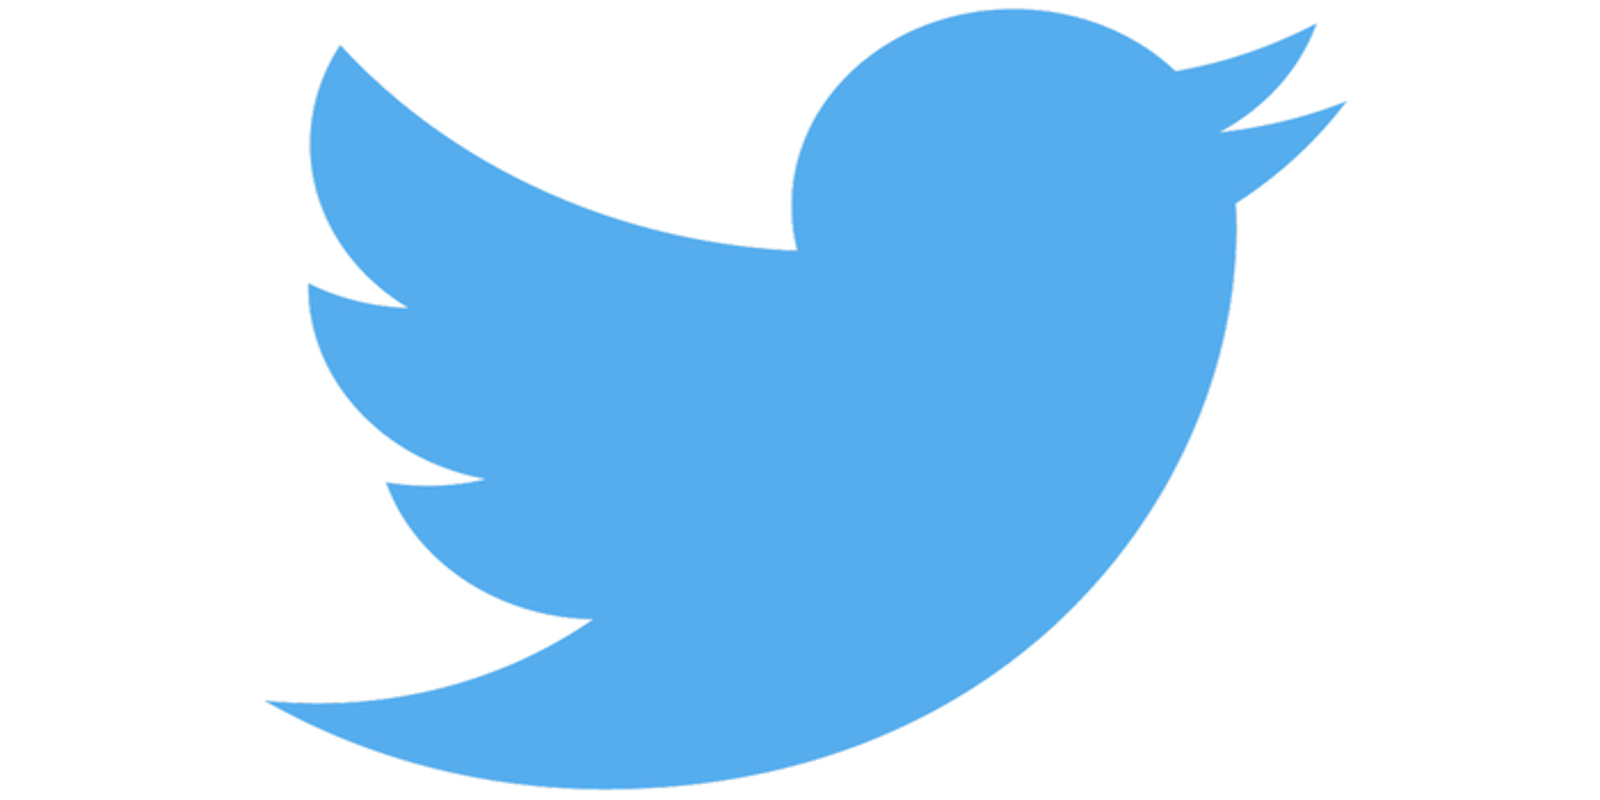 Today in History, March 21: Twitter sends out its first tweet